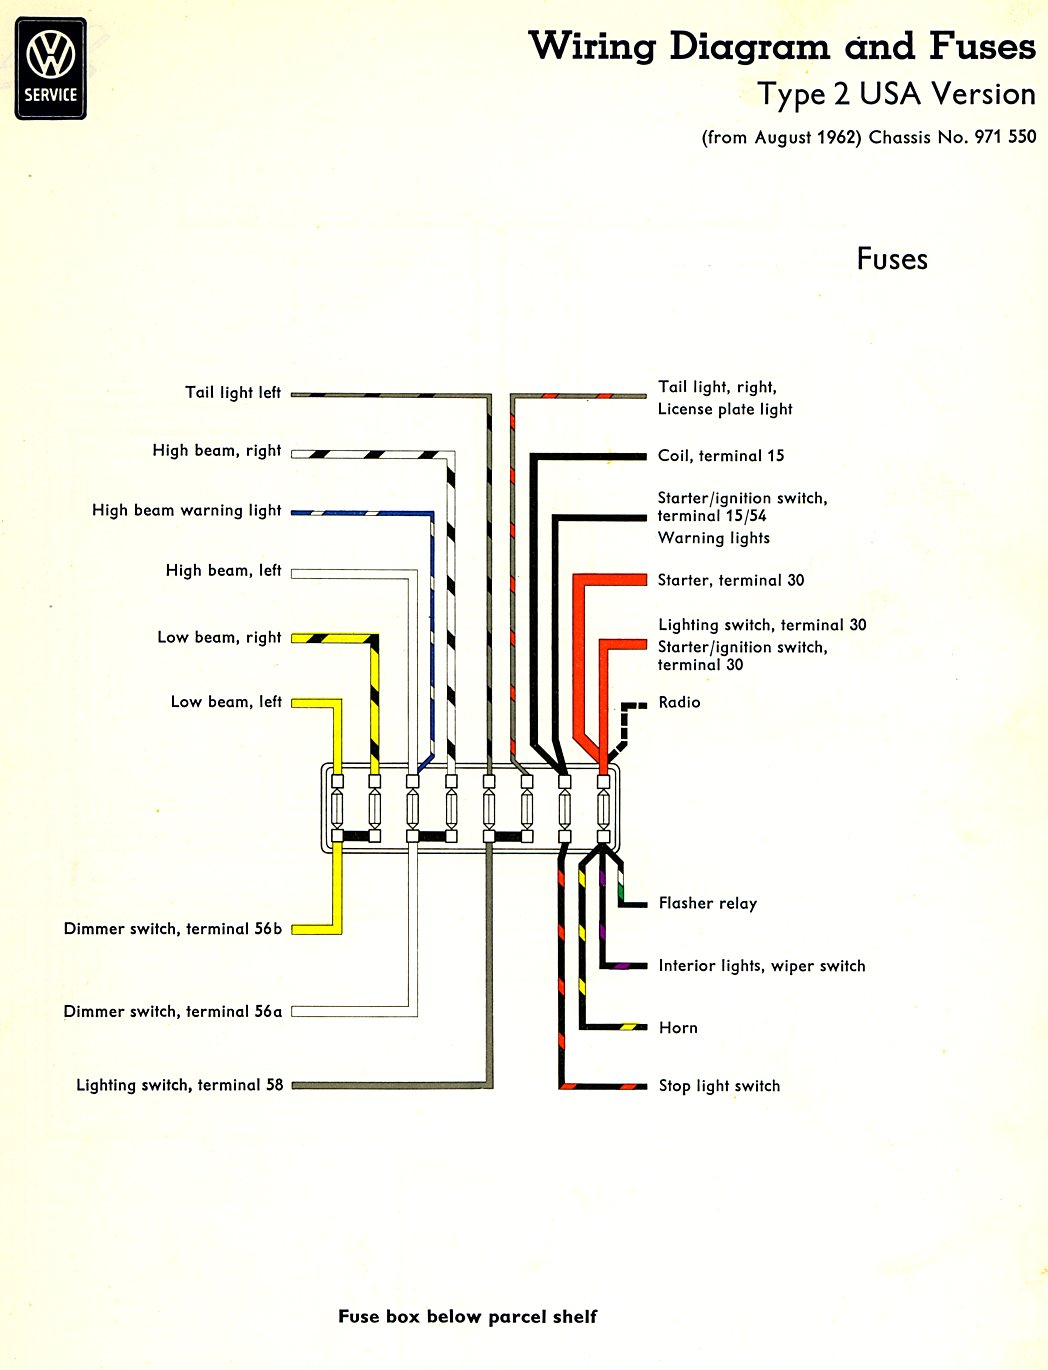 Vw Headlight Wiring Diagram - 2.xeghaqqt.chrisblacksbio.info • on vw dune buggy parts, mini buggy wiring diagram, vw dune buggy motor, vw dune buggy fuel tank, vw dune buggy lights, manx buggy wiring diagram, meyers manx wiring diagram, vw dune buggy wheels, sand car wiring diagram, vw dune buggy frame, home wiring diagram, vw dune buggy tires, vw dune buggy accessories, vw dune buggy body, vw dune buggy seats, vw dune buggy clutch, rail buggy wiring diagram, vw dune buggy engine, vw dune buggy radio, vw dune buggy suspension,